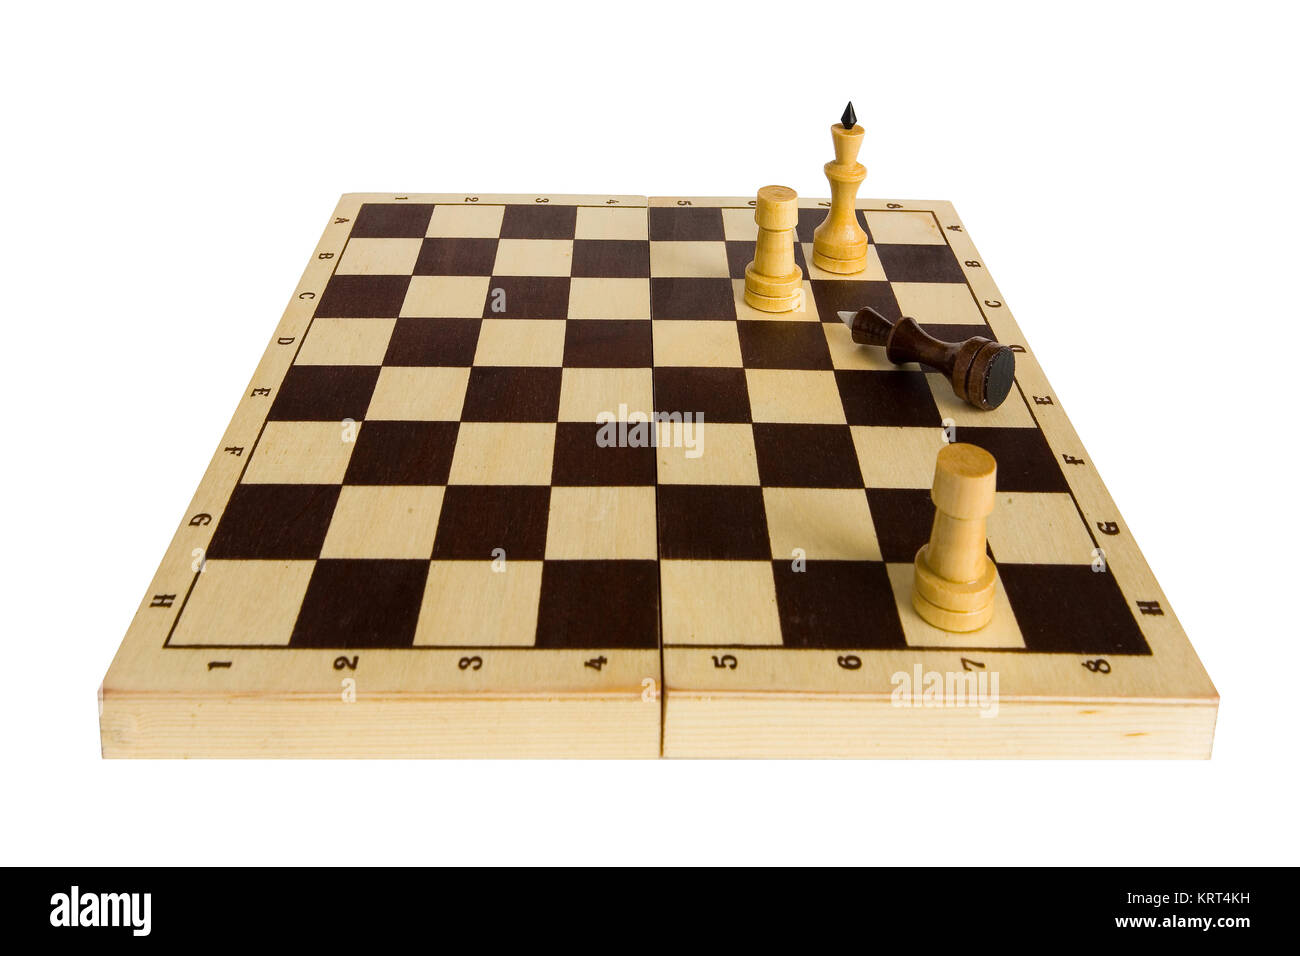 Chess. The Black King gave in and lies on the chessboard. - Stock Image